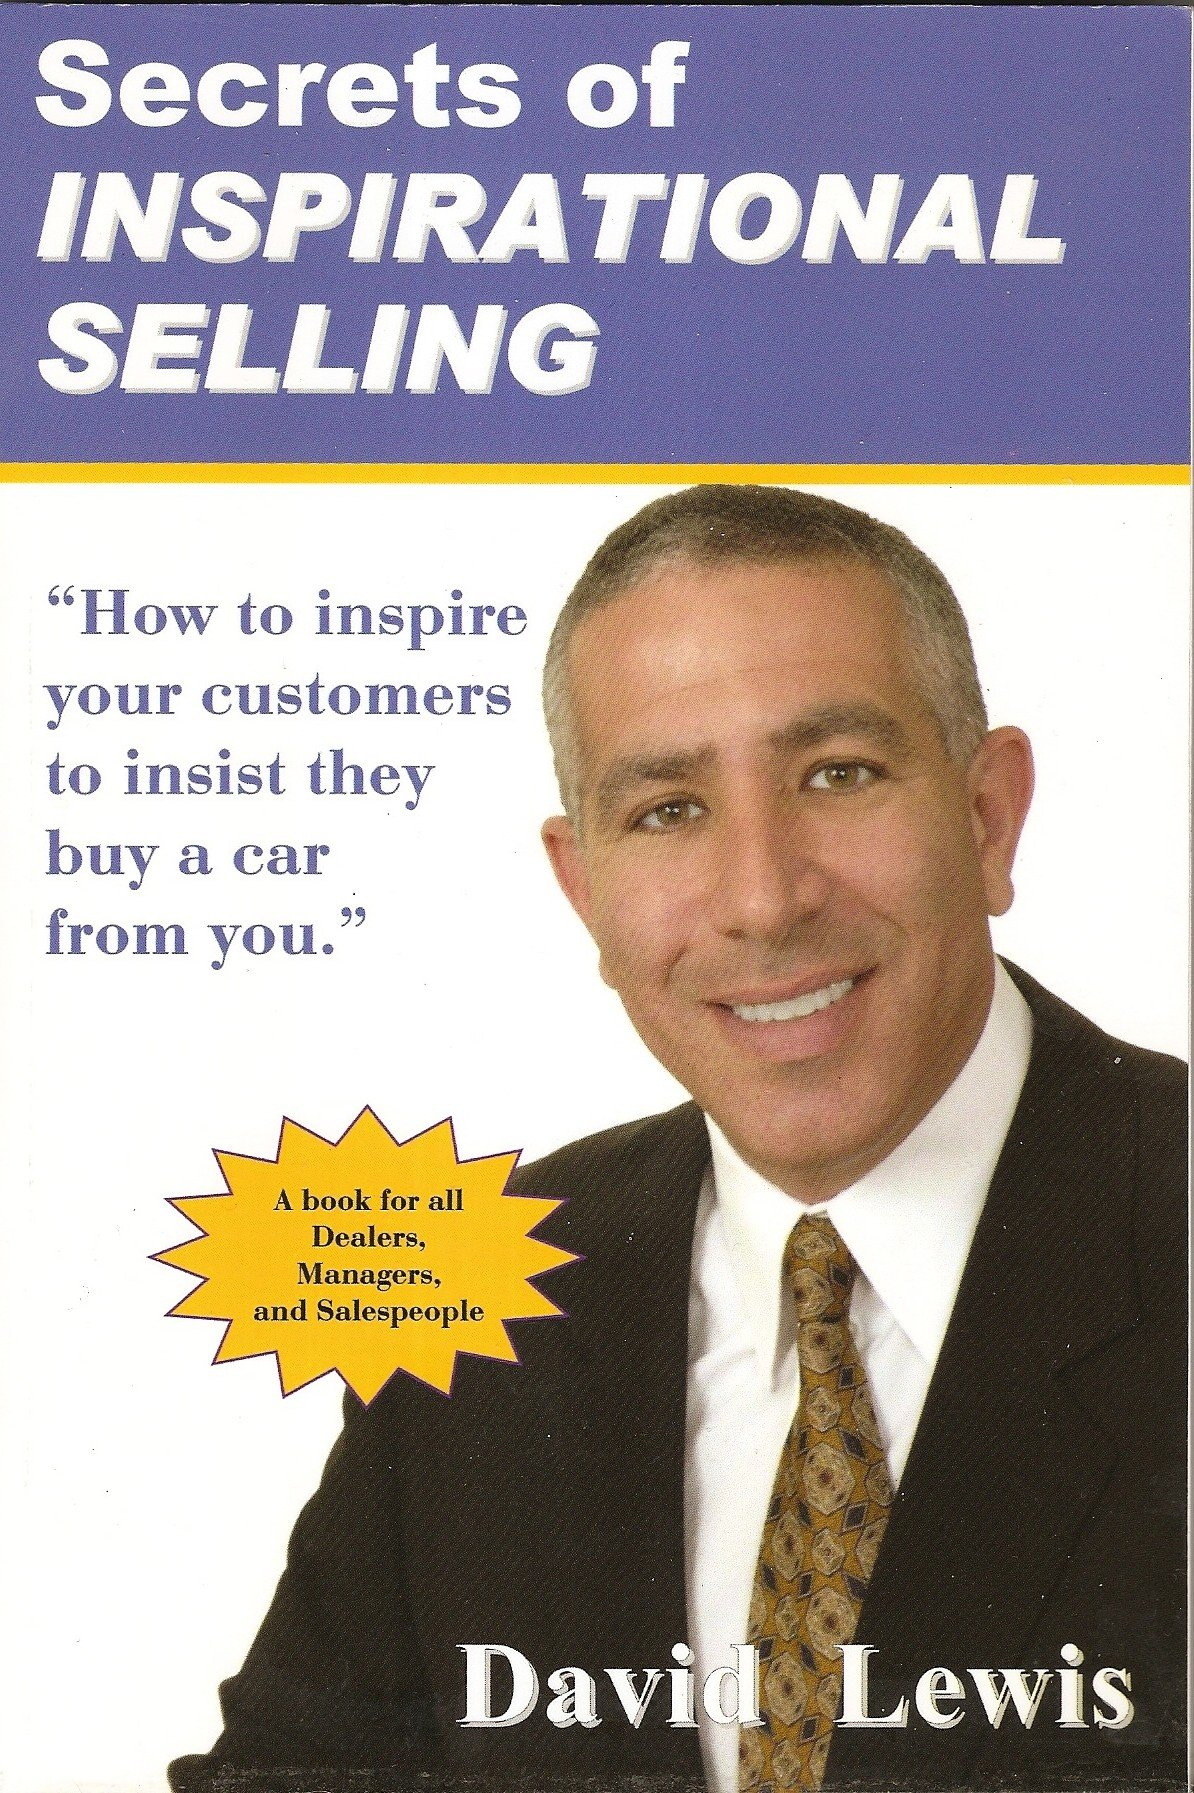 Secrets Of Inspirational Selling 1st Edition By David Lewis (2008)  Paperback: David Lewis: 9780964634749: Amazon: Books